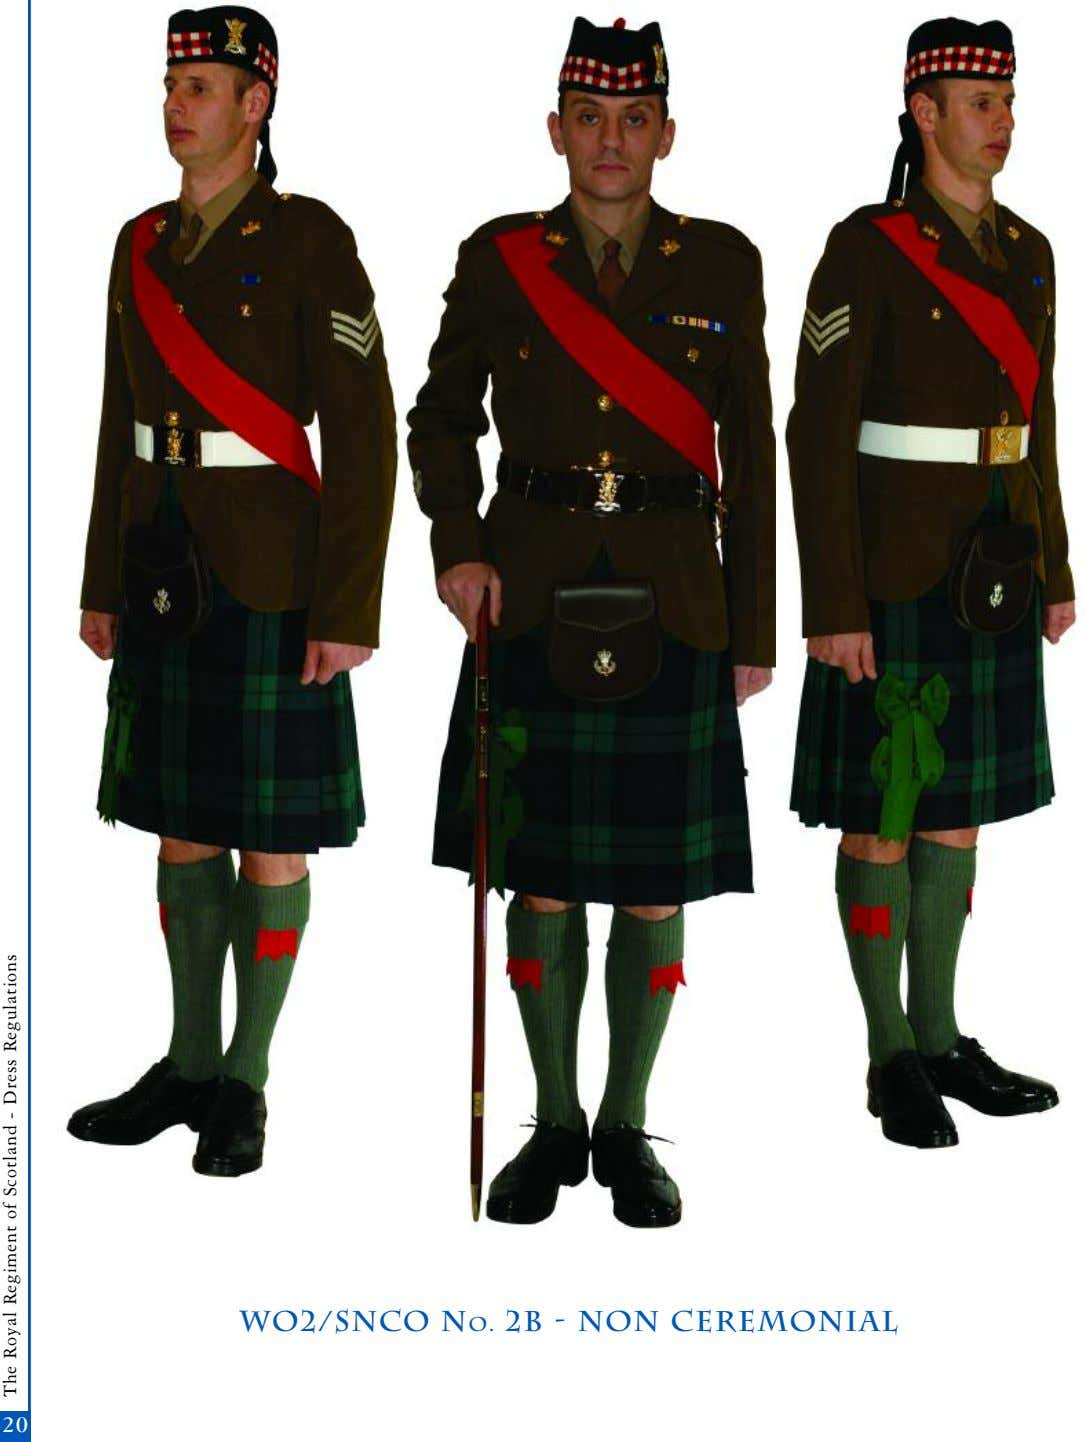 wo2/snco No. 2b - non Ceremonial 20 The Royal Regiment of Scotland - Dress Regulations